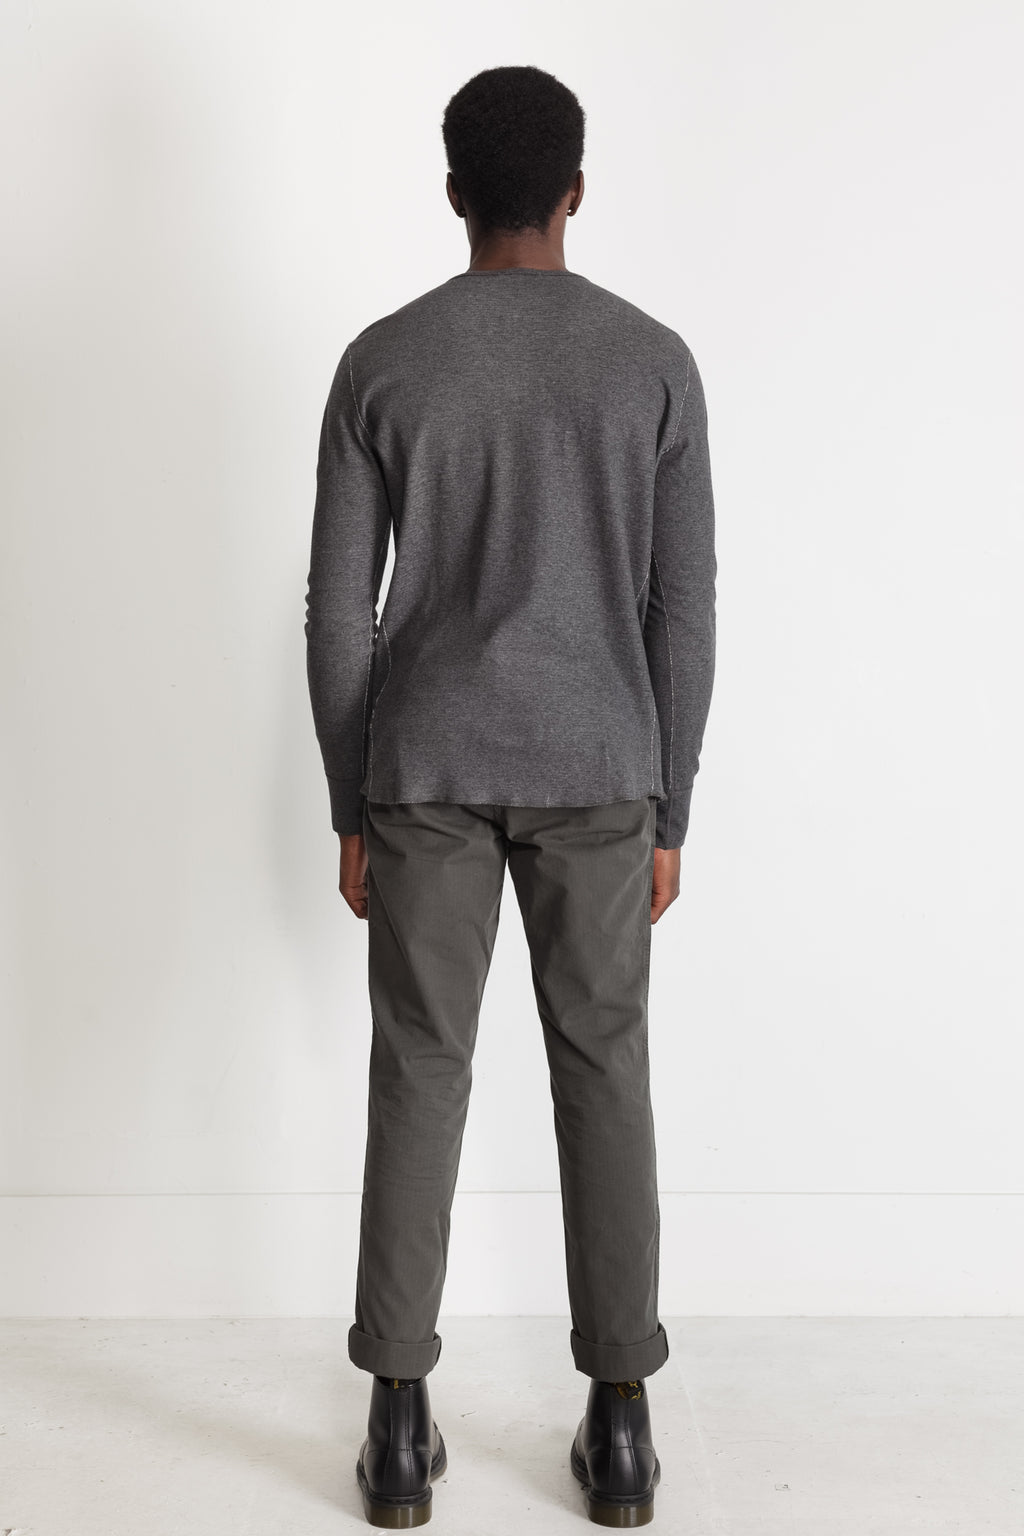 mesh thermal henley in melange charcoal 05